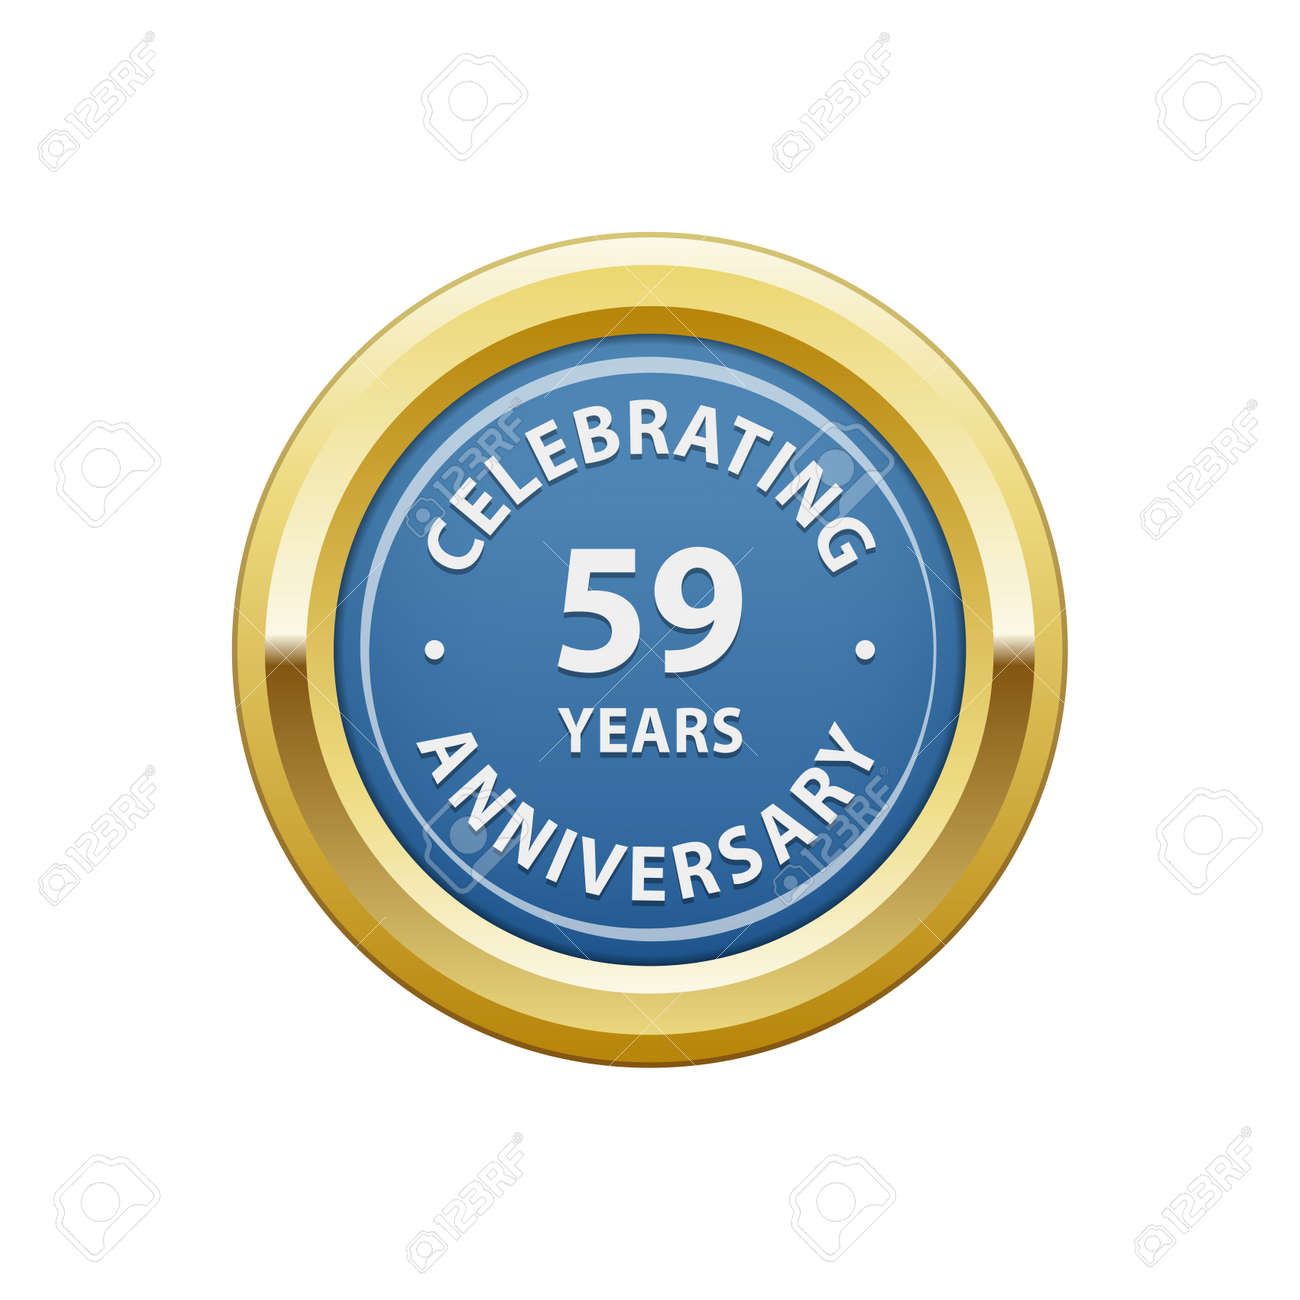 Image result for clipart for celebrating 59 years